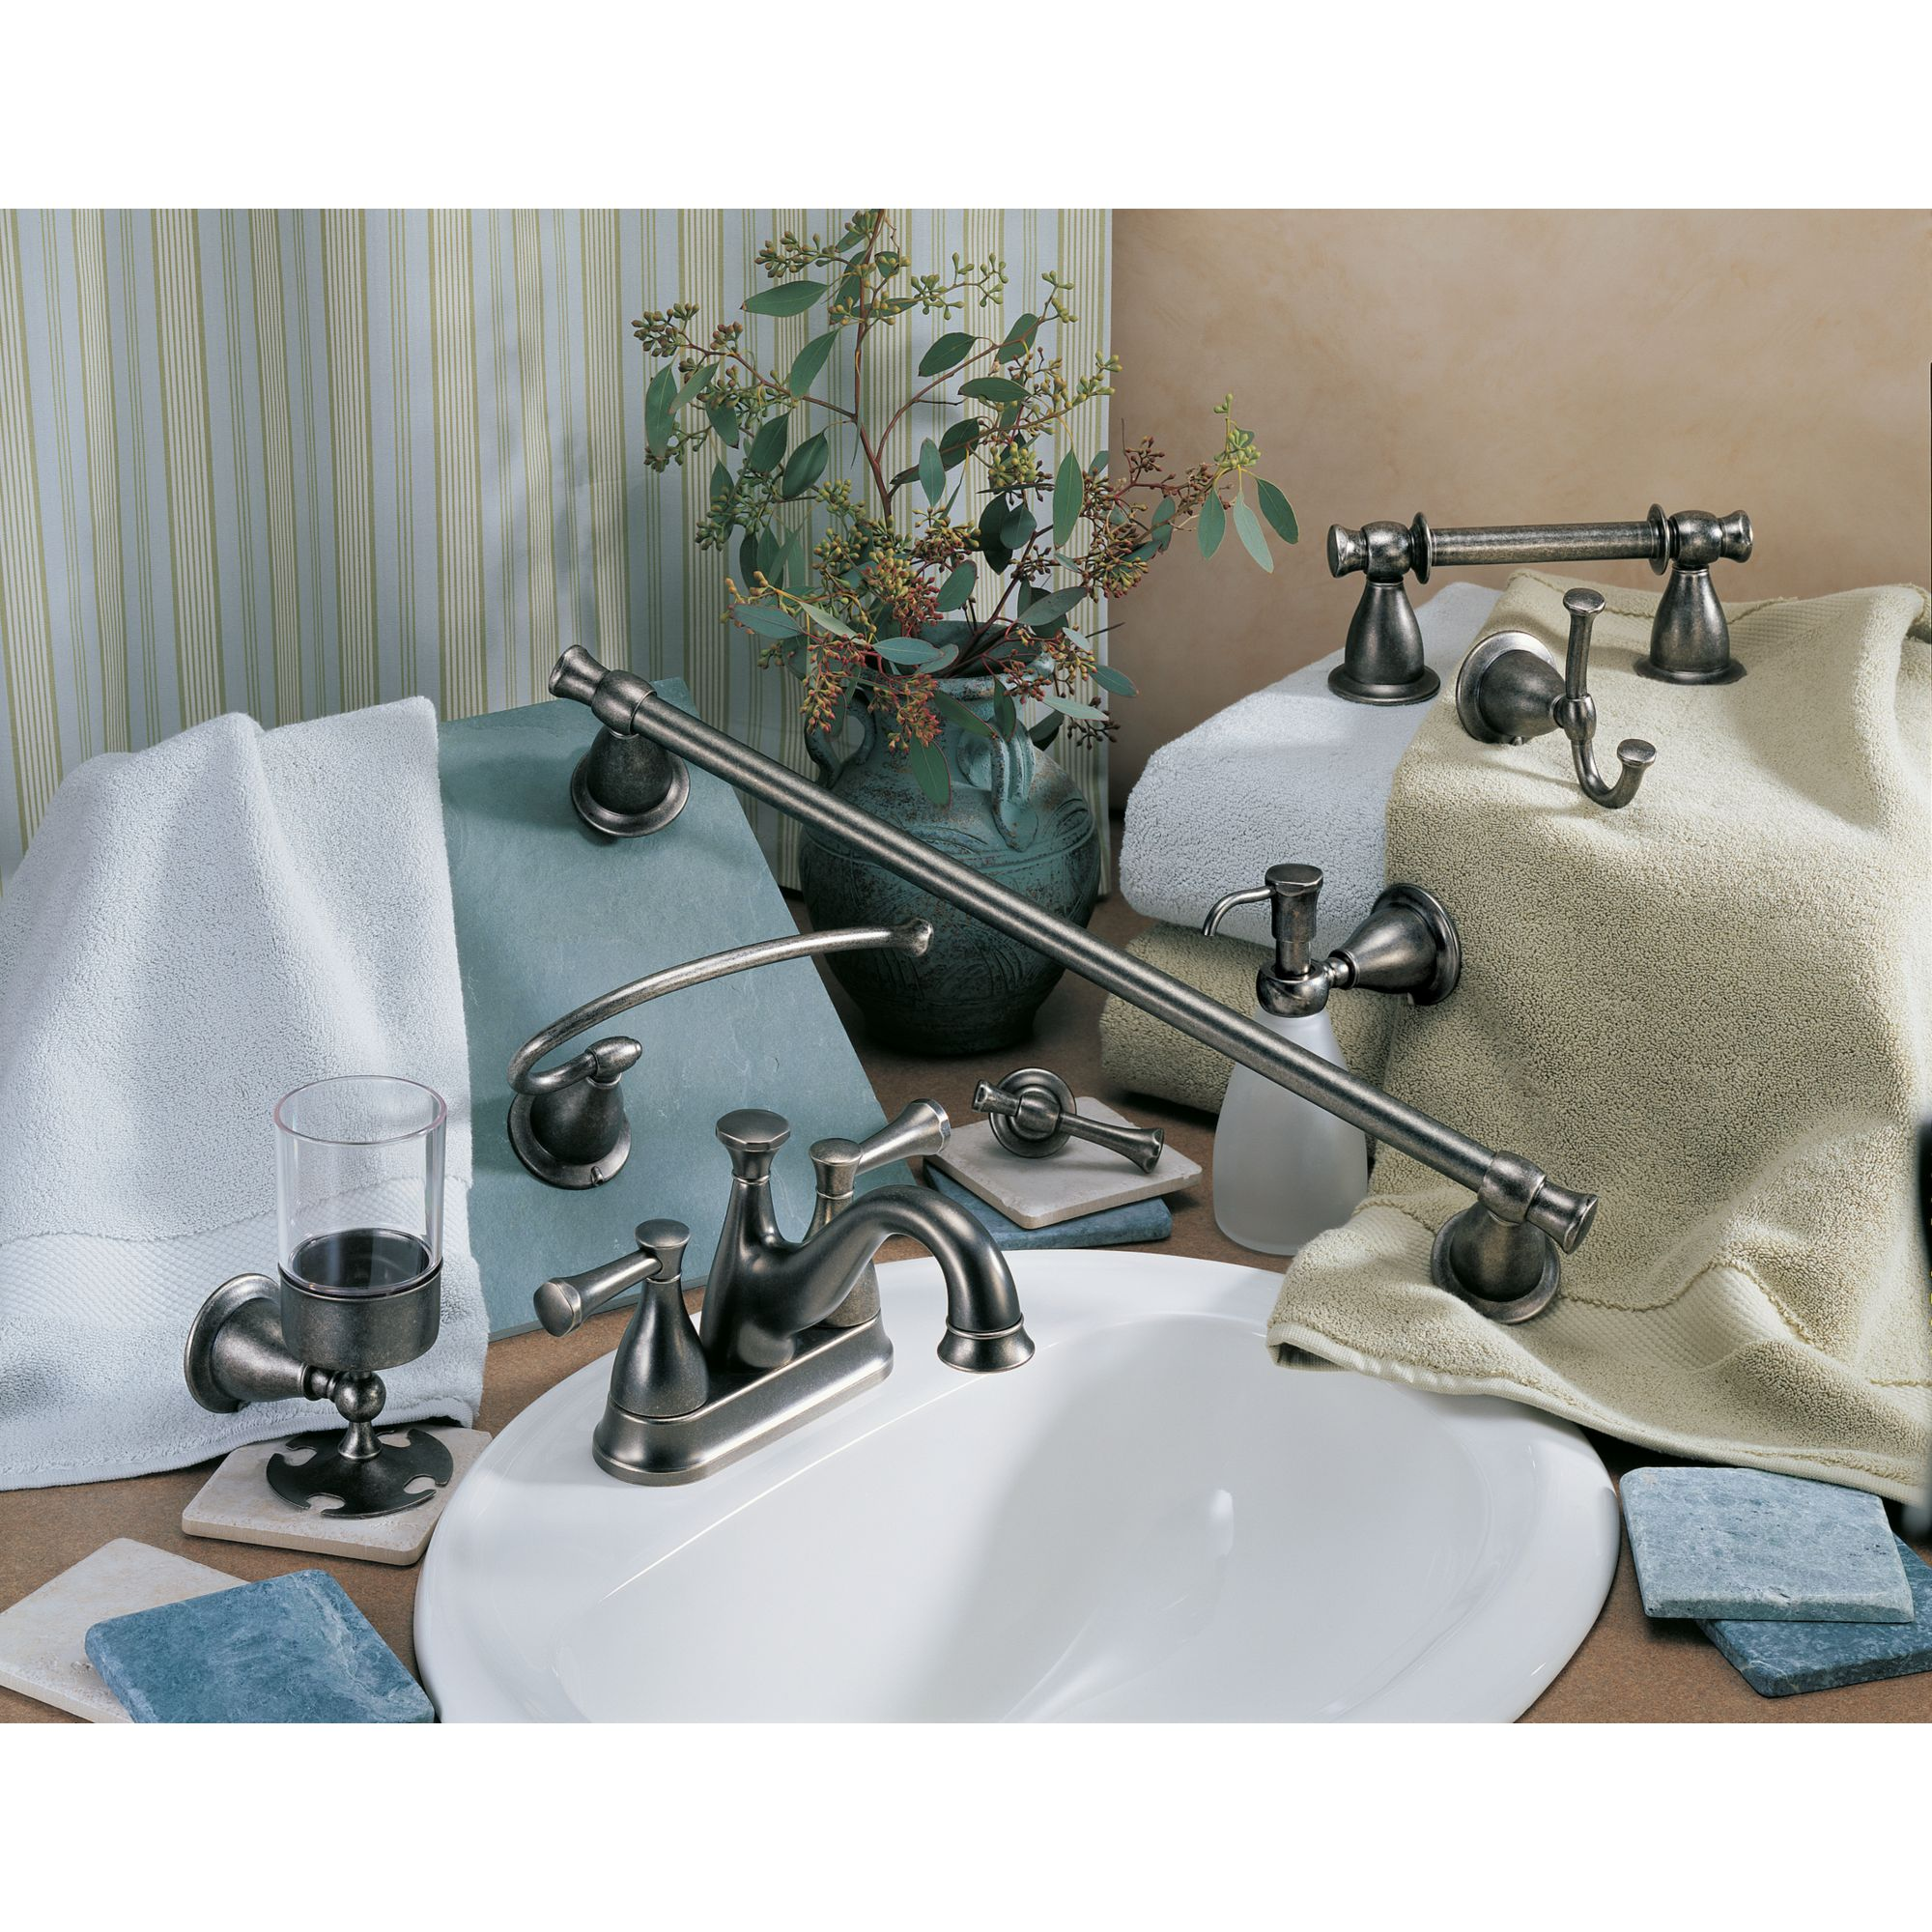 Affordable bathroom accessories - Affordable Bathroom Updates